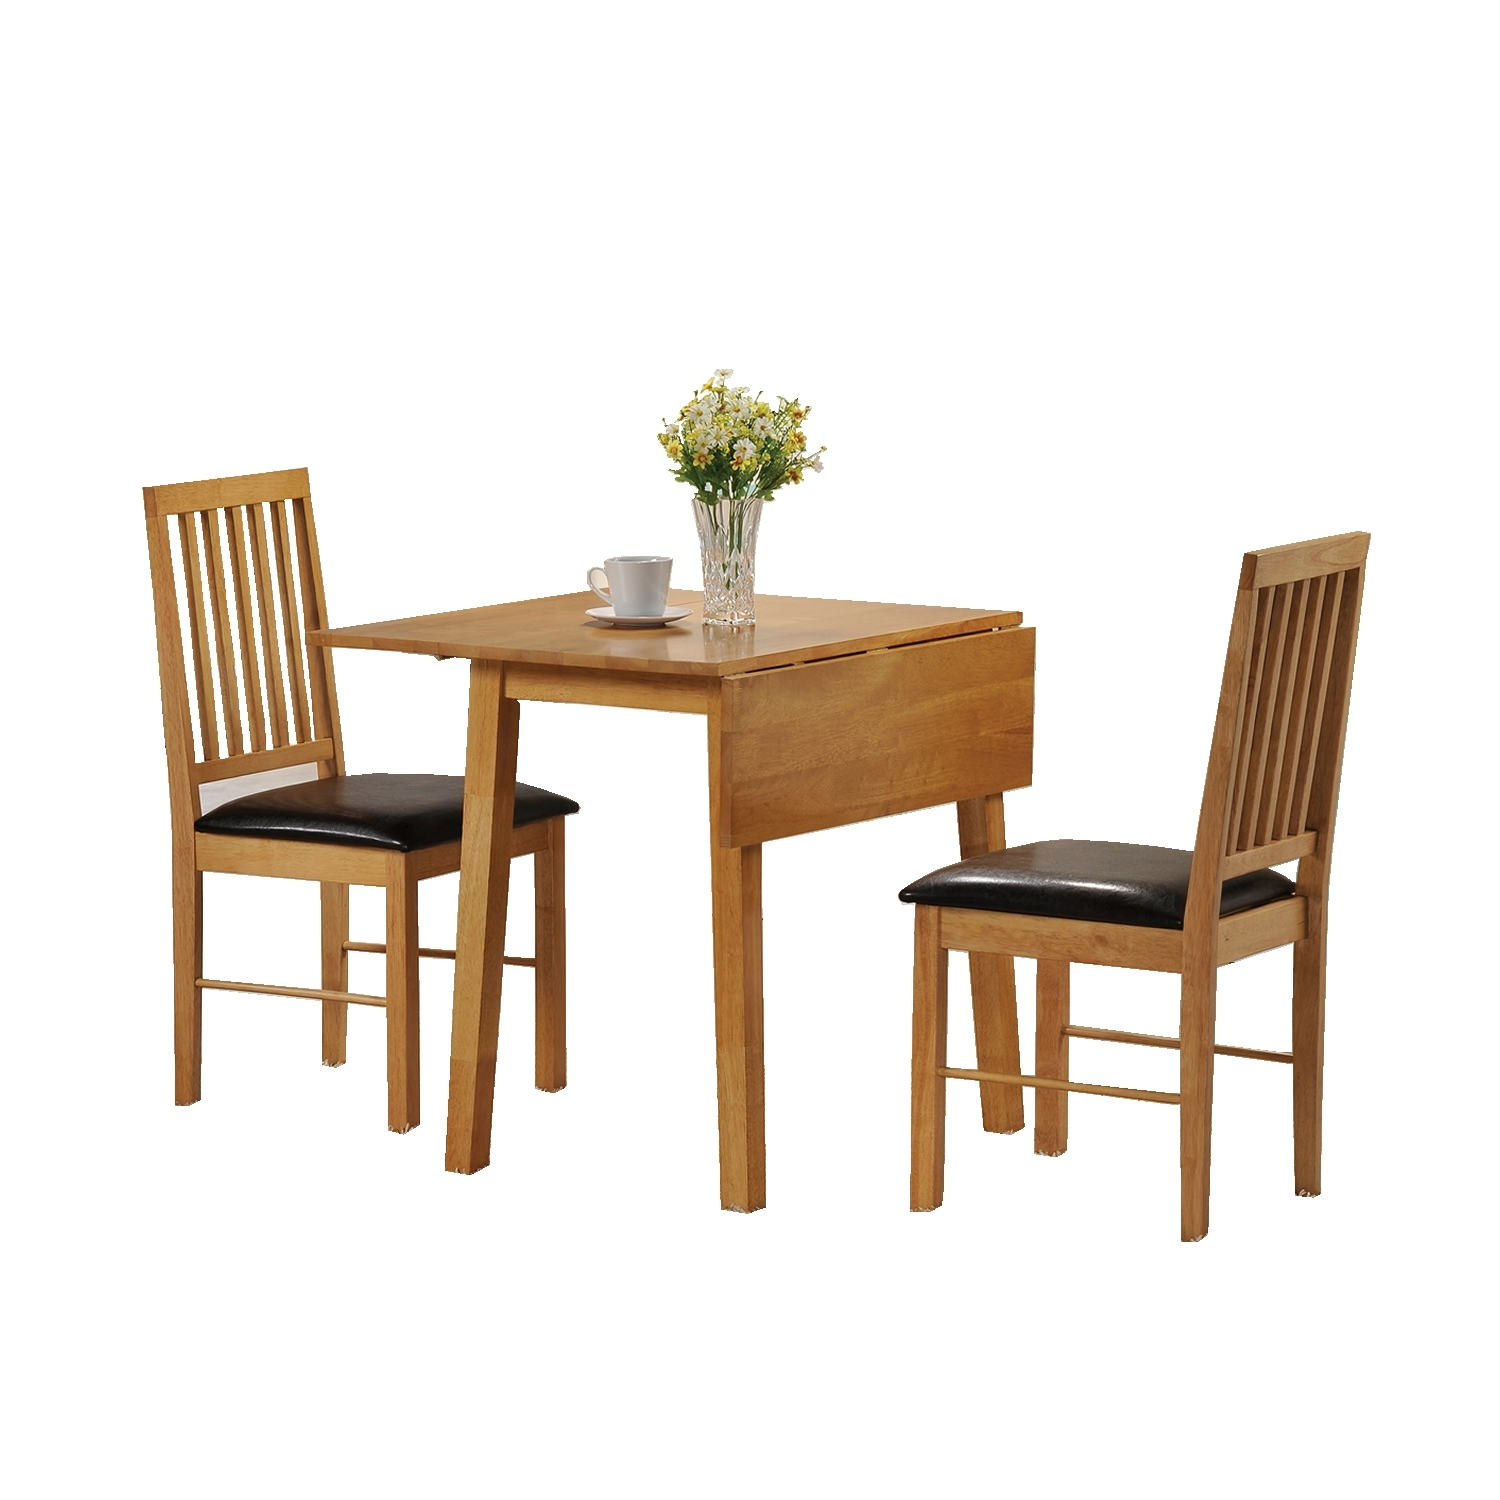 Most Recent Small Dining Tables For 2 Pertaining To Dining Table And 2 Chairs Set 2 Seater Drop Leaf Set, Small Dining (View 7 of 25)